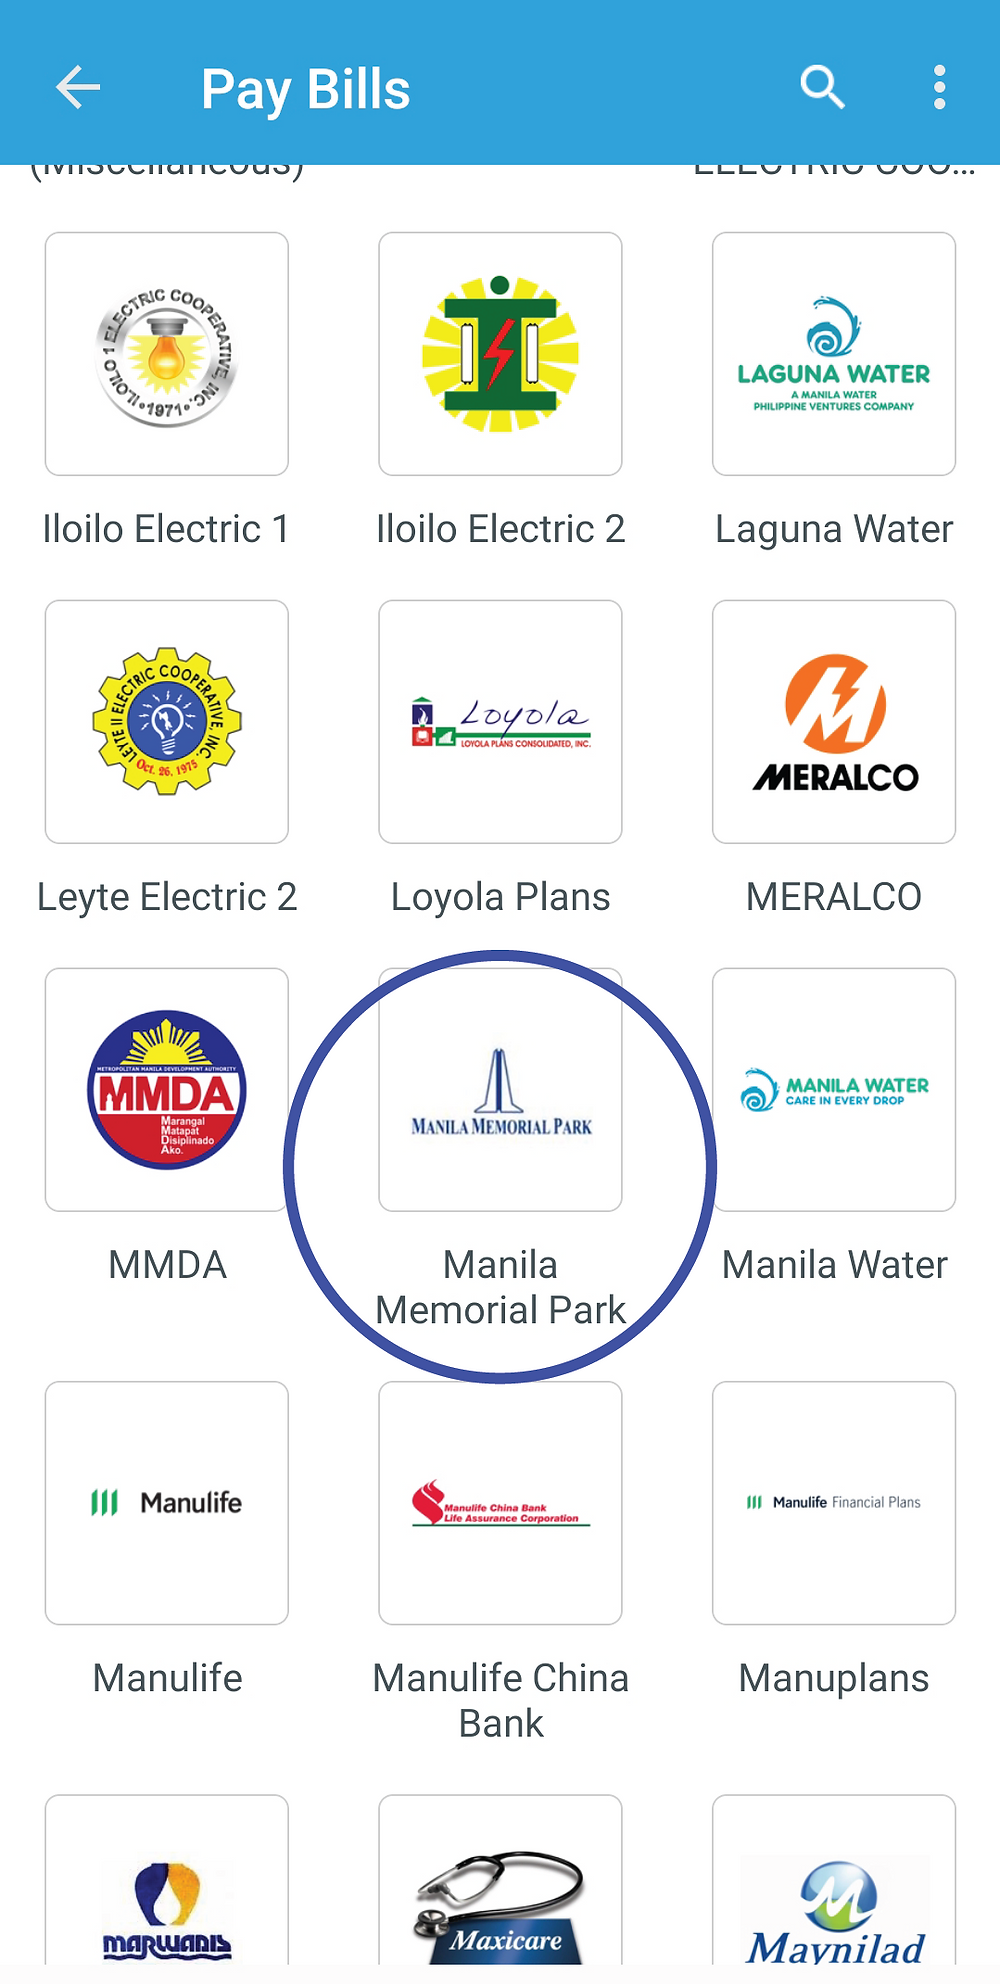 Look for Manila Memorial Park biller to pay your monthly installment